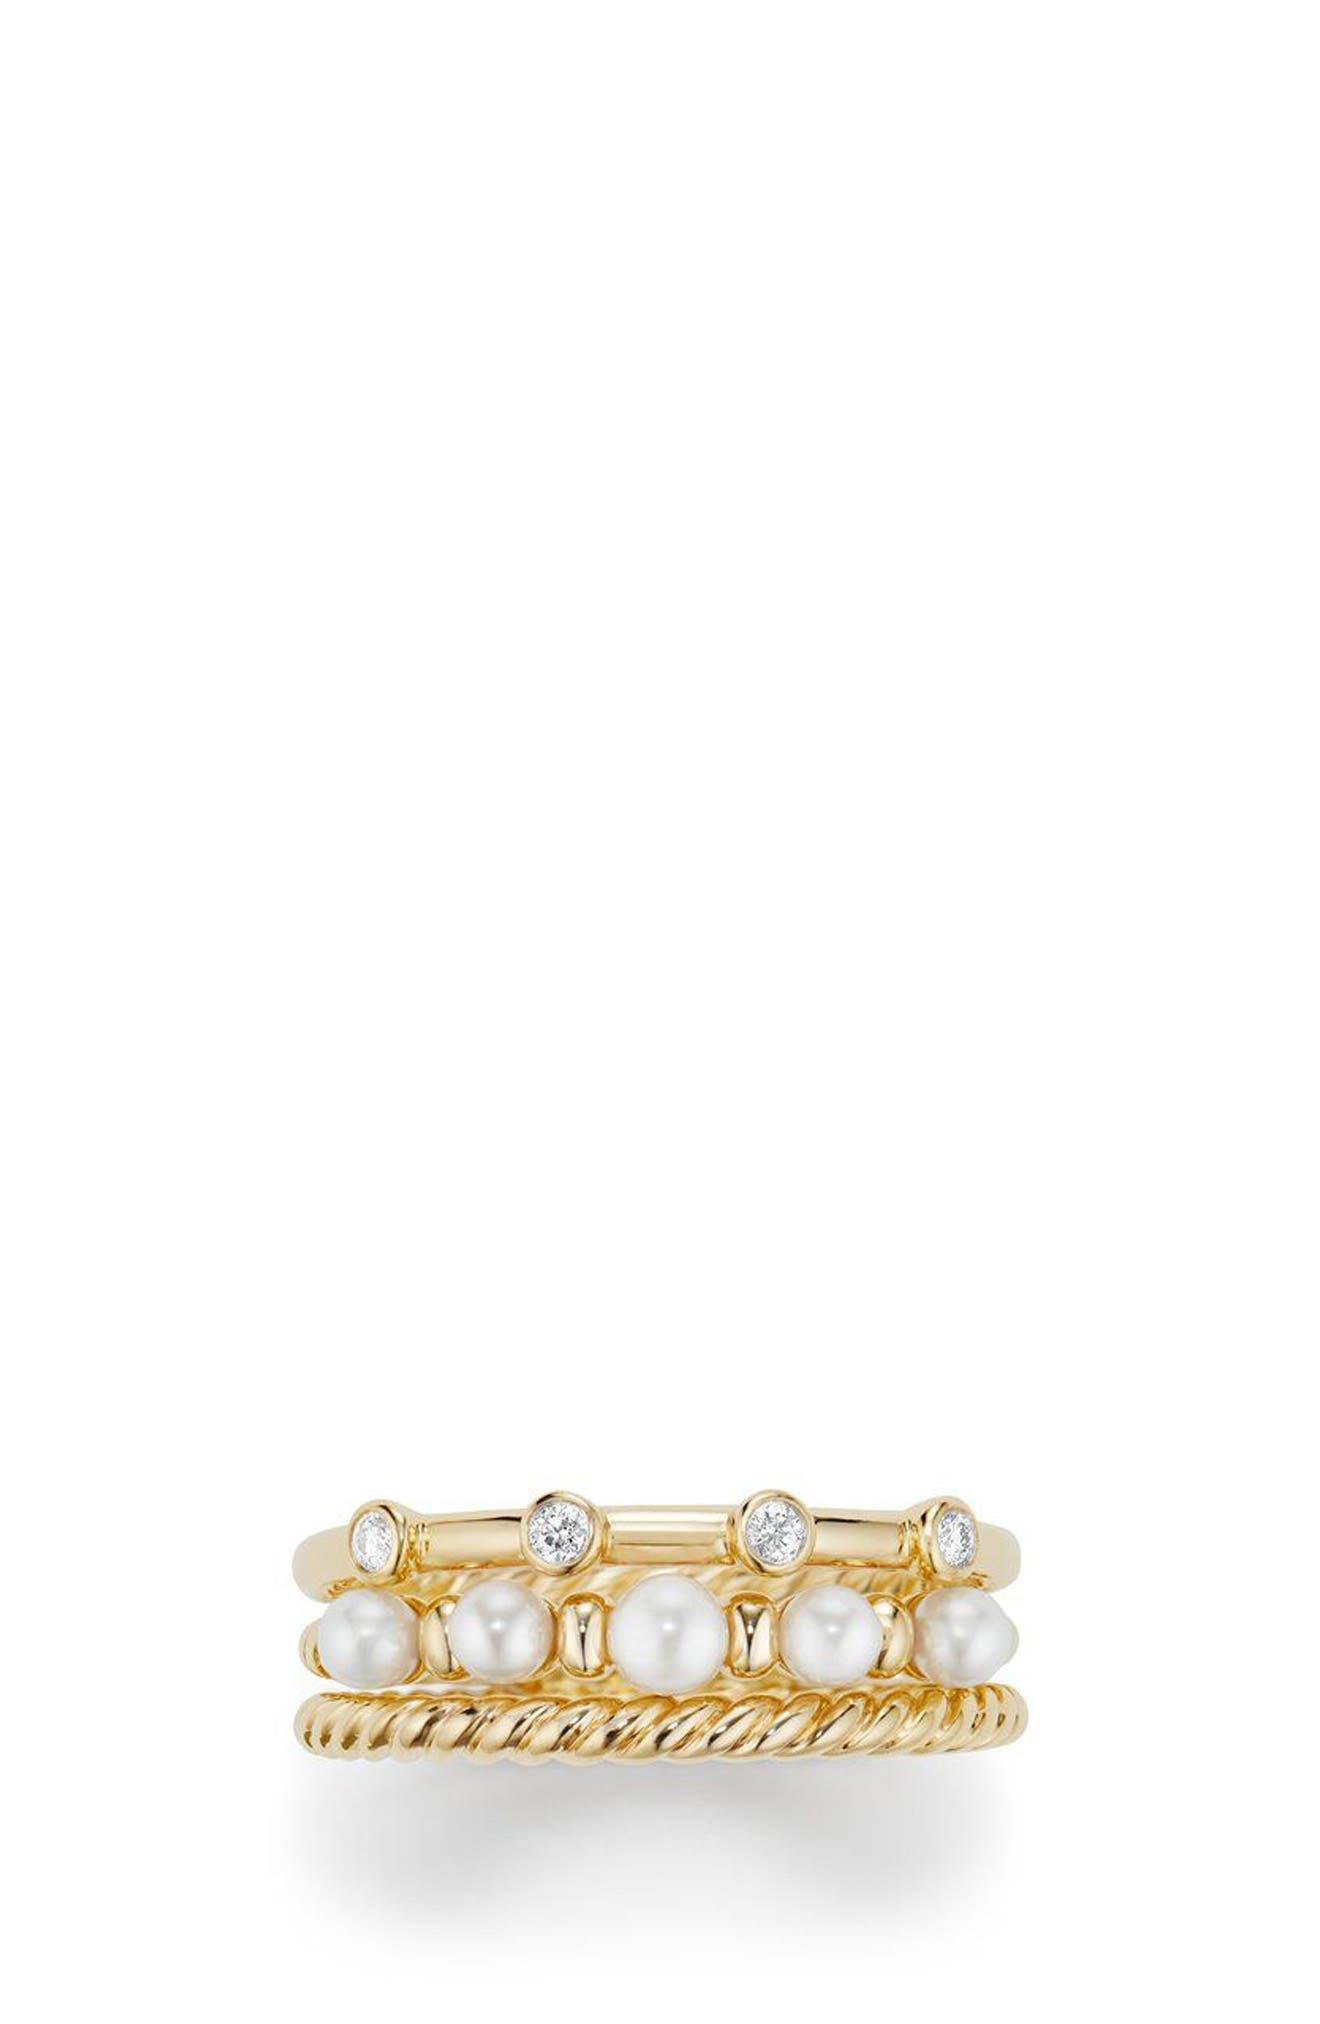 David Yurman Petite Perle Narrow Multi Row Ring with Pearls and Diamonds